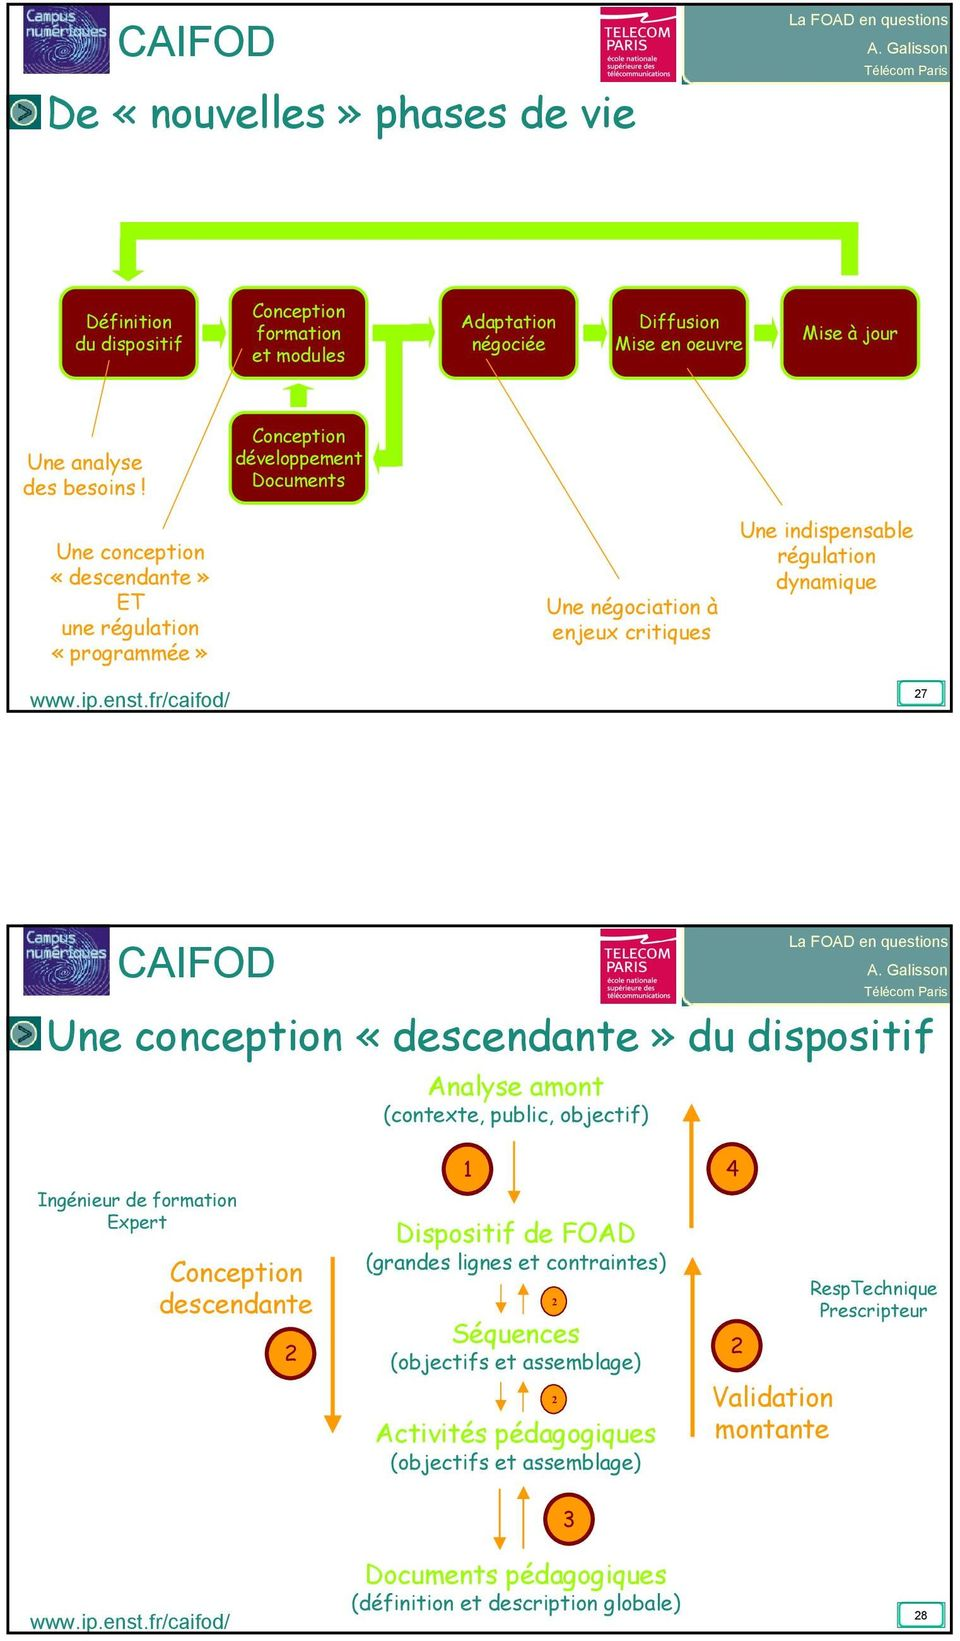 conception «descendante» du dispositif Analyse amont (contexte, public, objectif) Ingénieur de formation Expert Conception descendante 2 1 Dispositif de FOAD (grandes lignes et